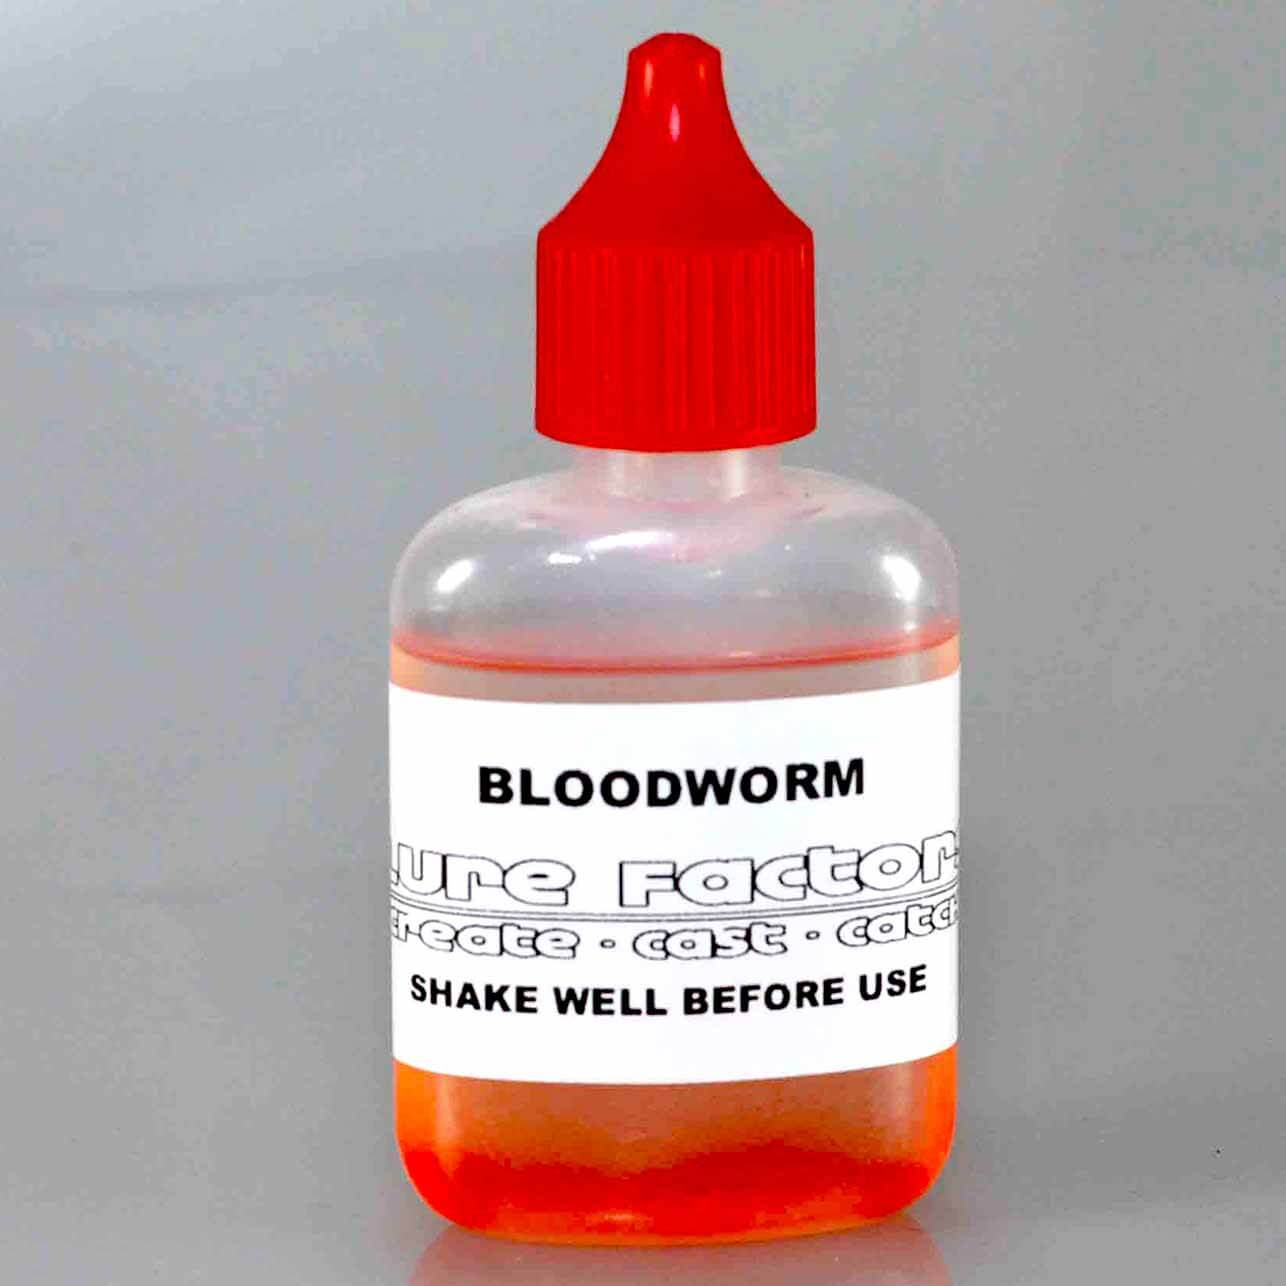 Bloodworm scent